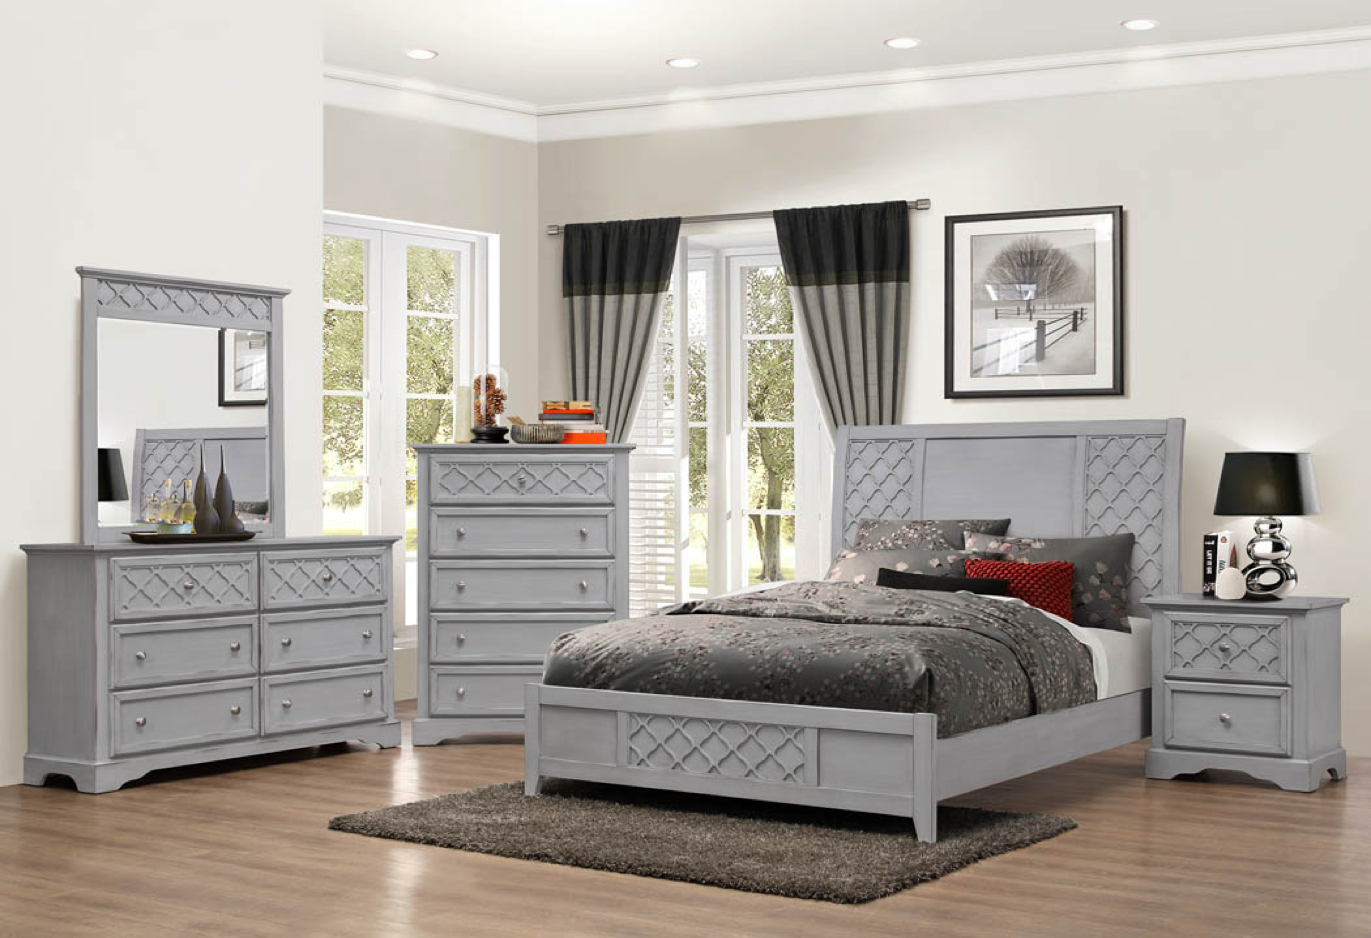 TS0066 Bedroom Furniture